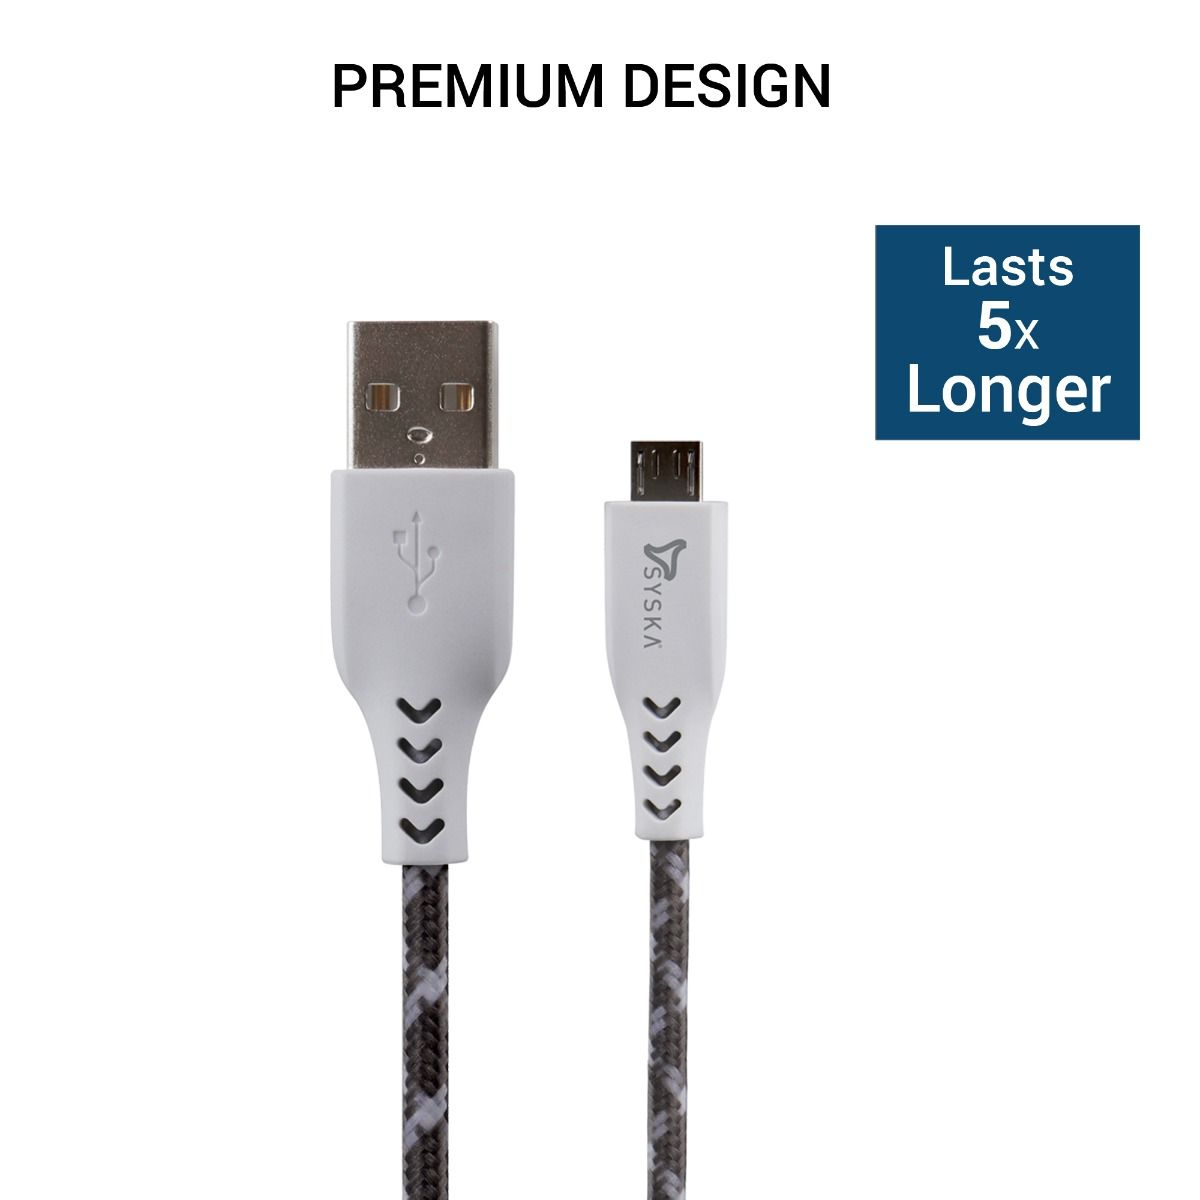 Fastlink Micro-USB Charging Cable CCMP10